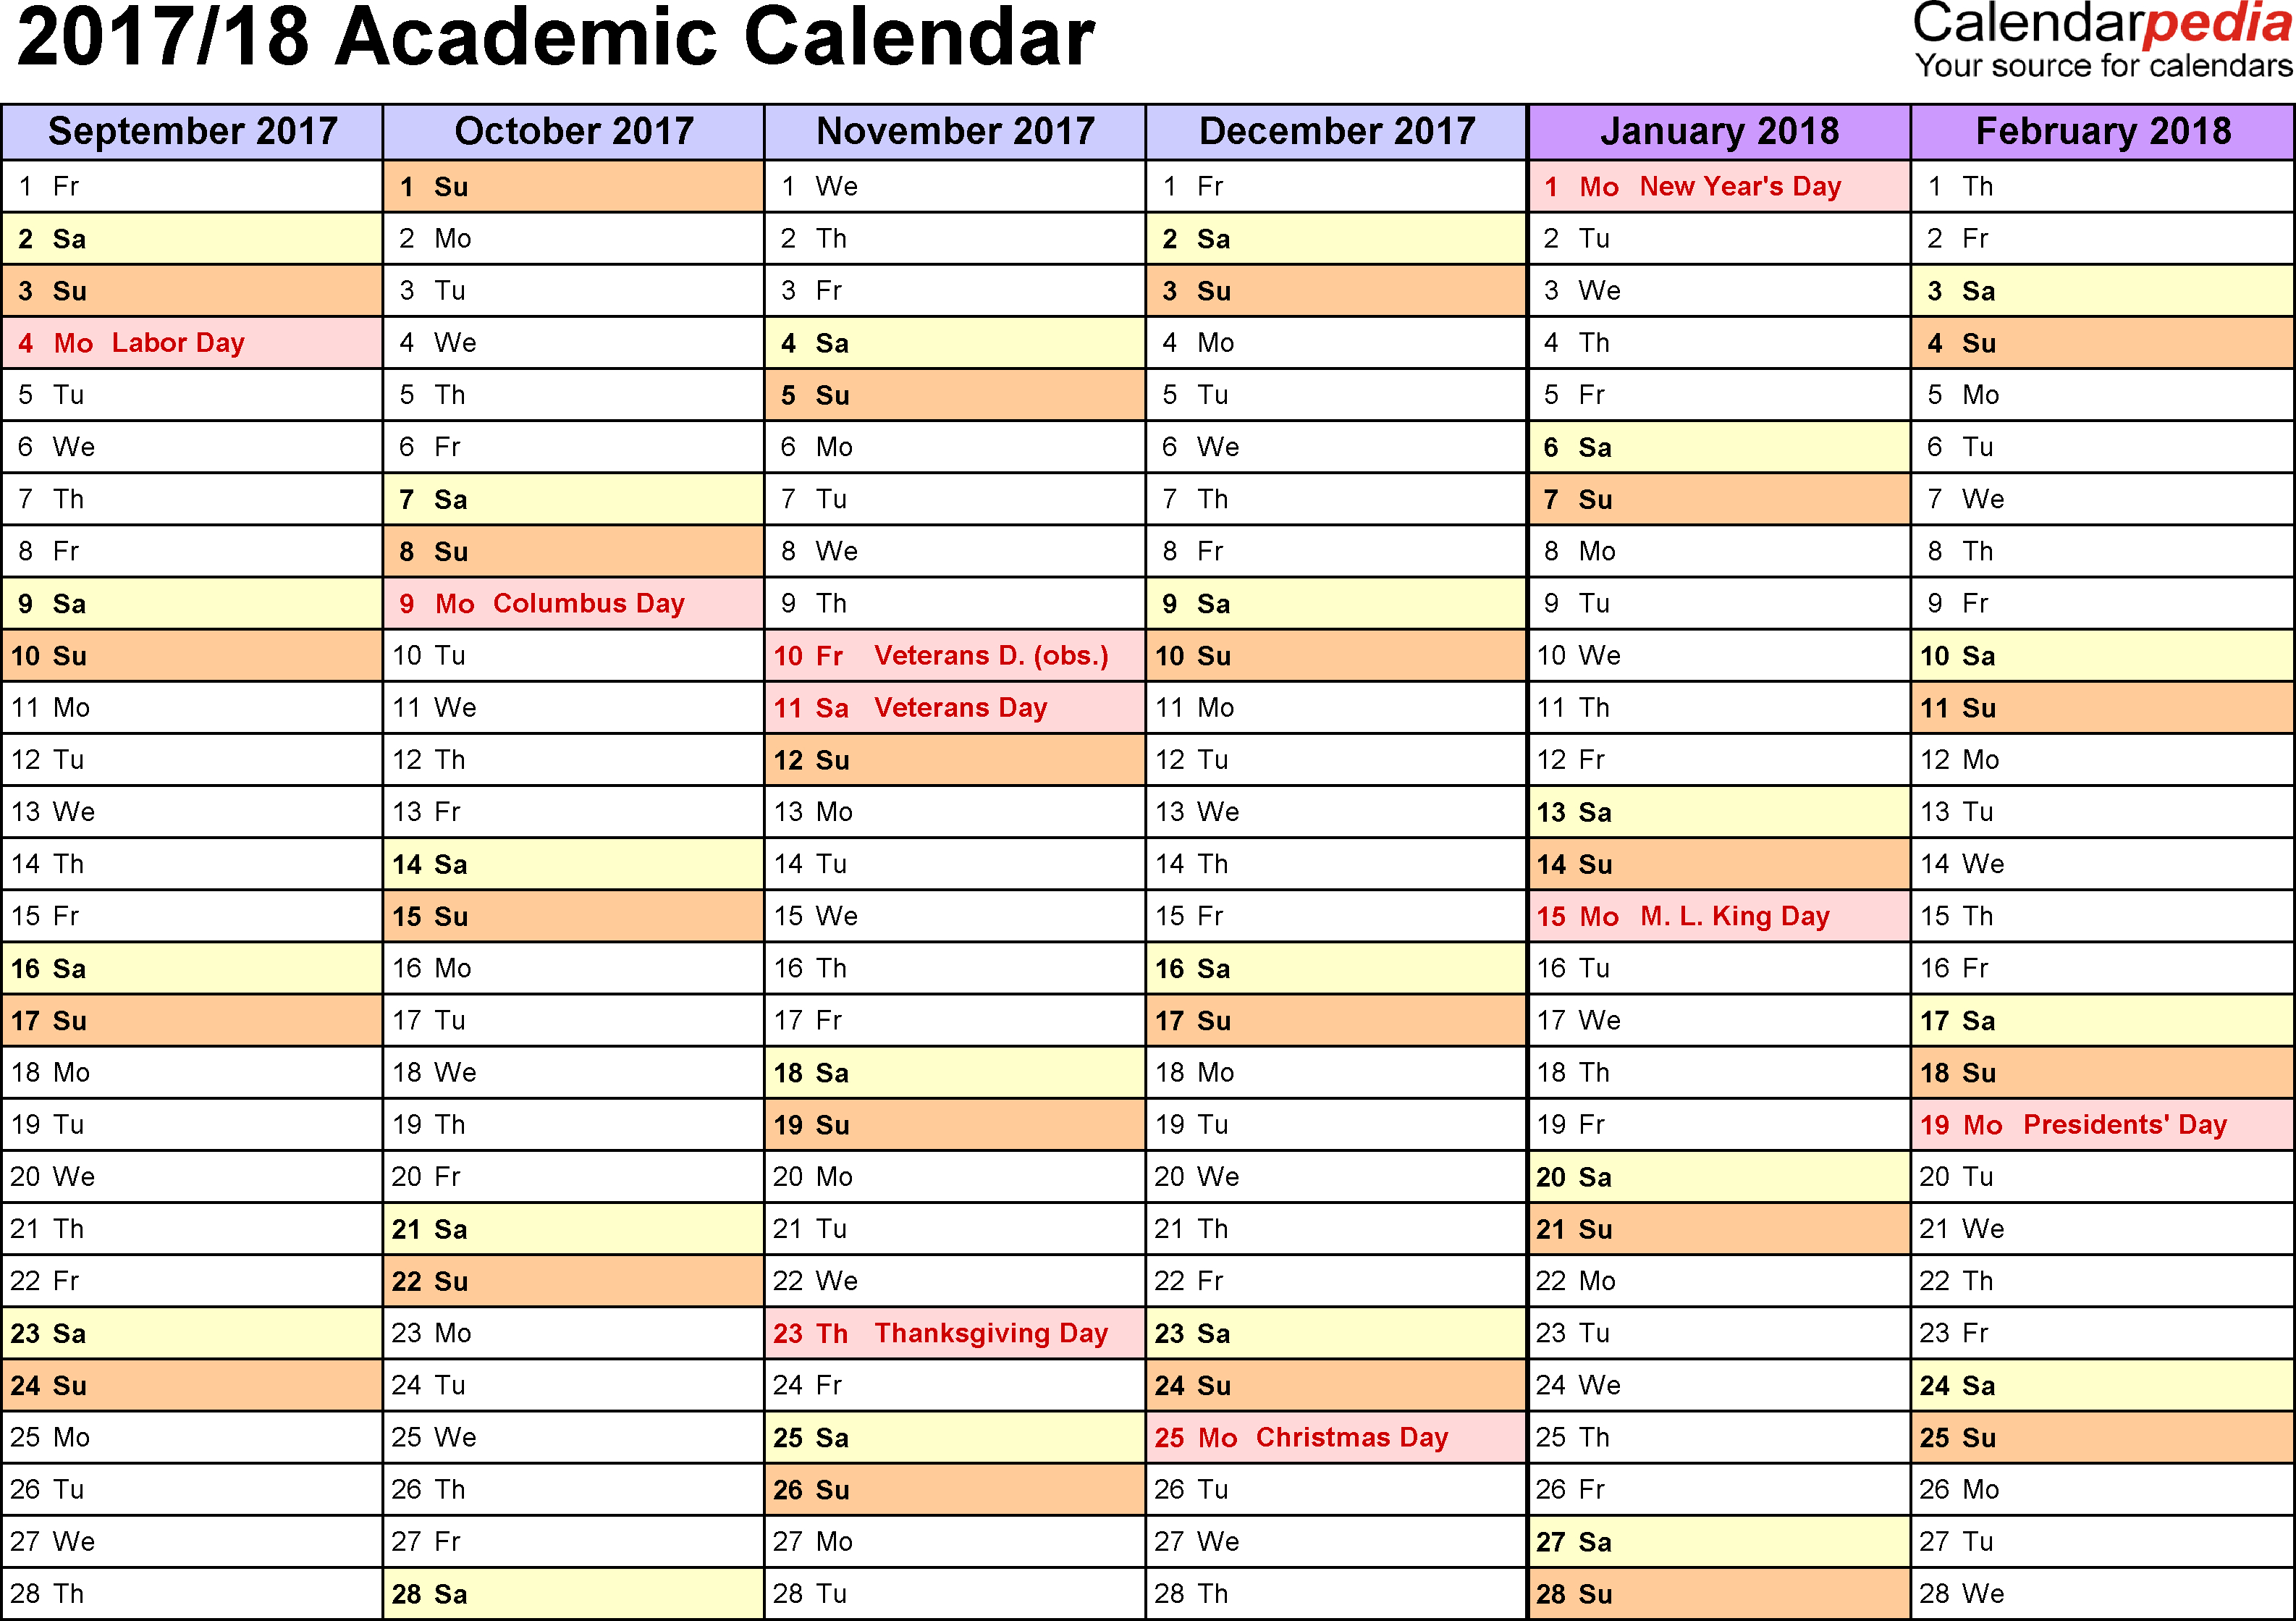 Academic Calendars 2017/2018 - Free Printable Excel Templates with Calendar Blank Planner Months 18 School Year